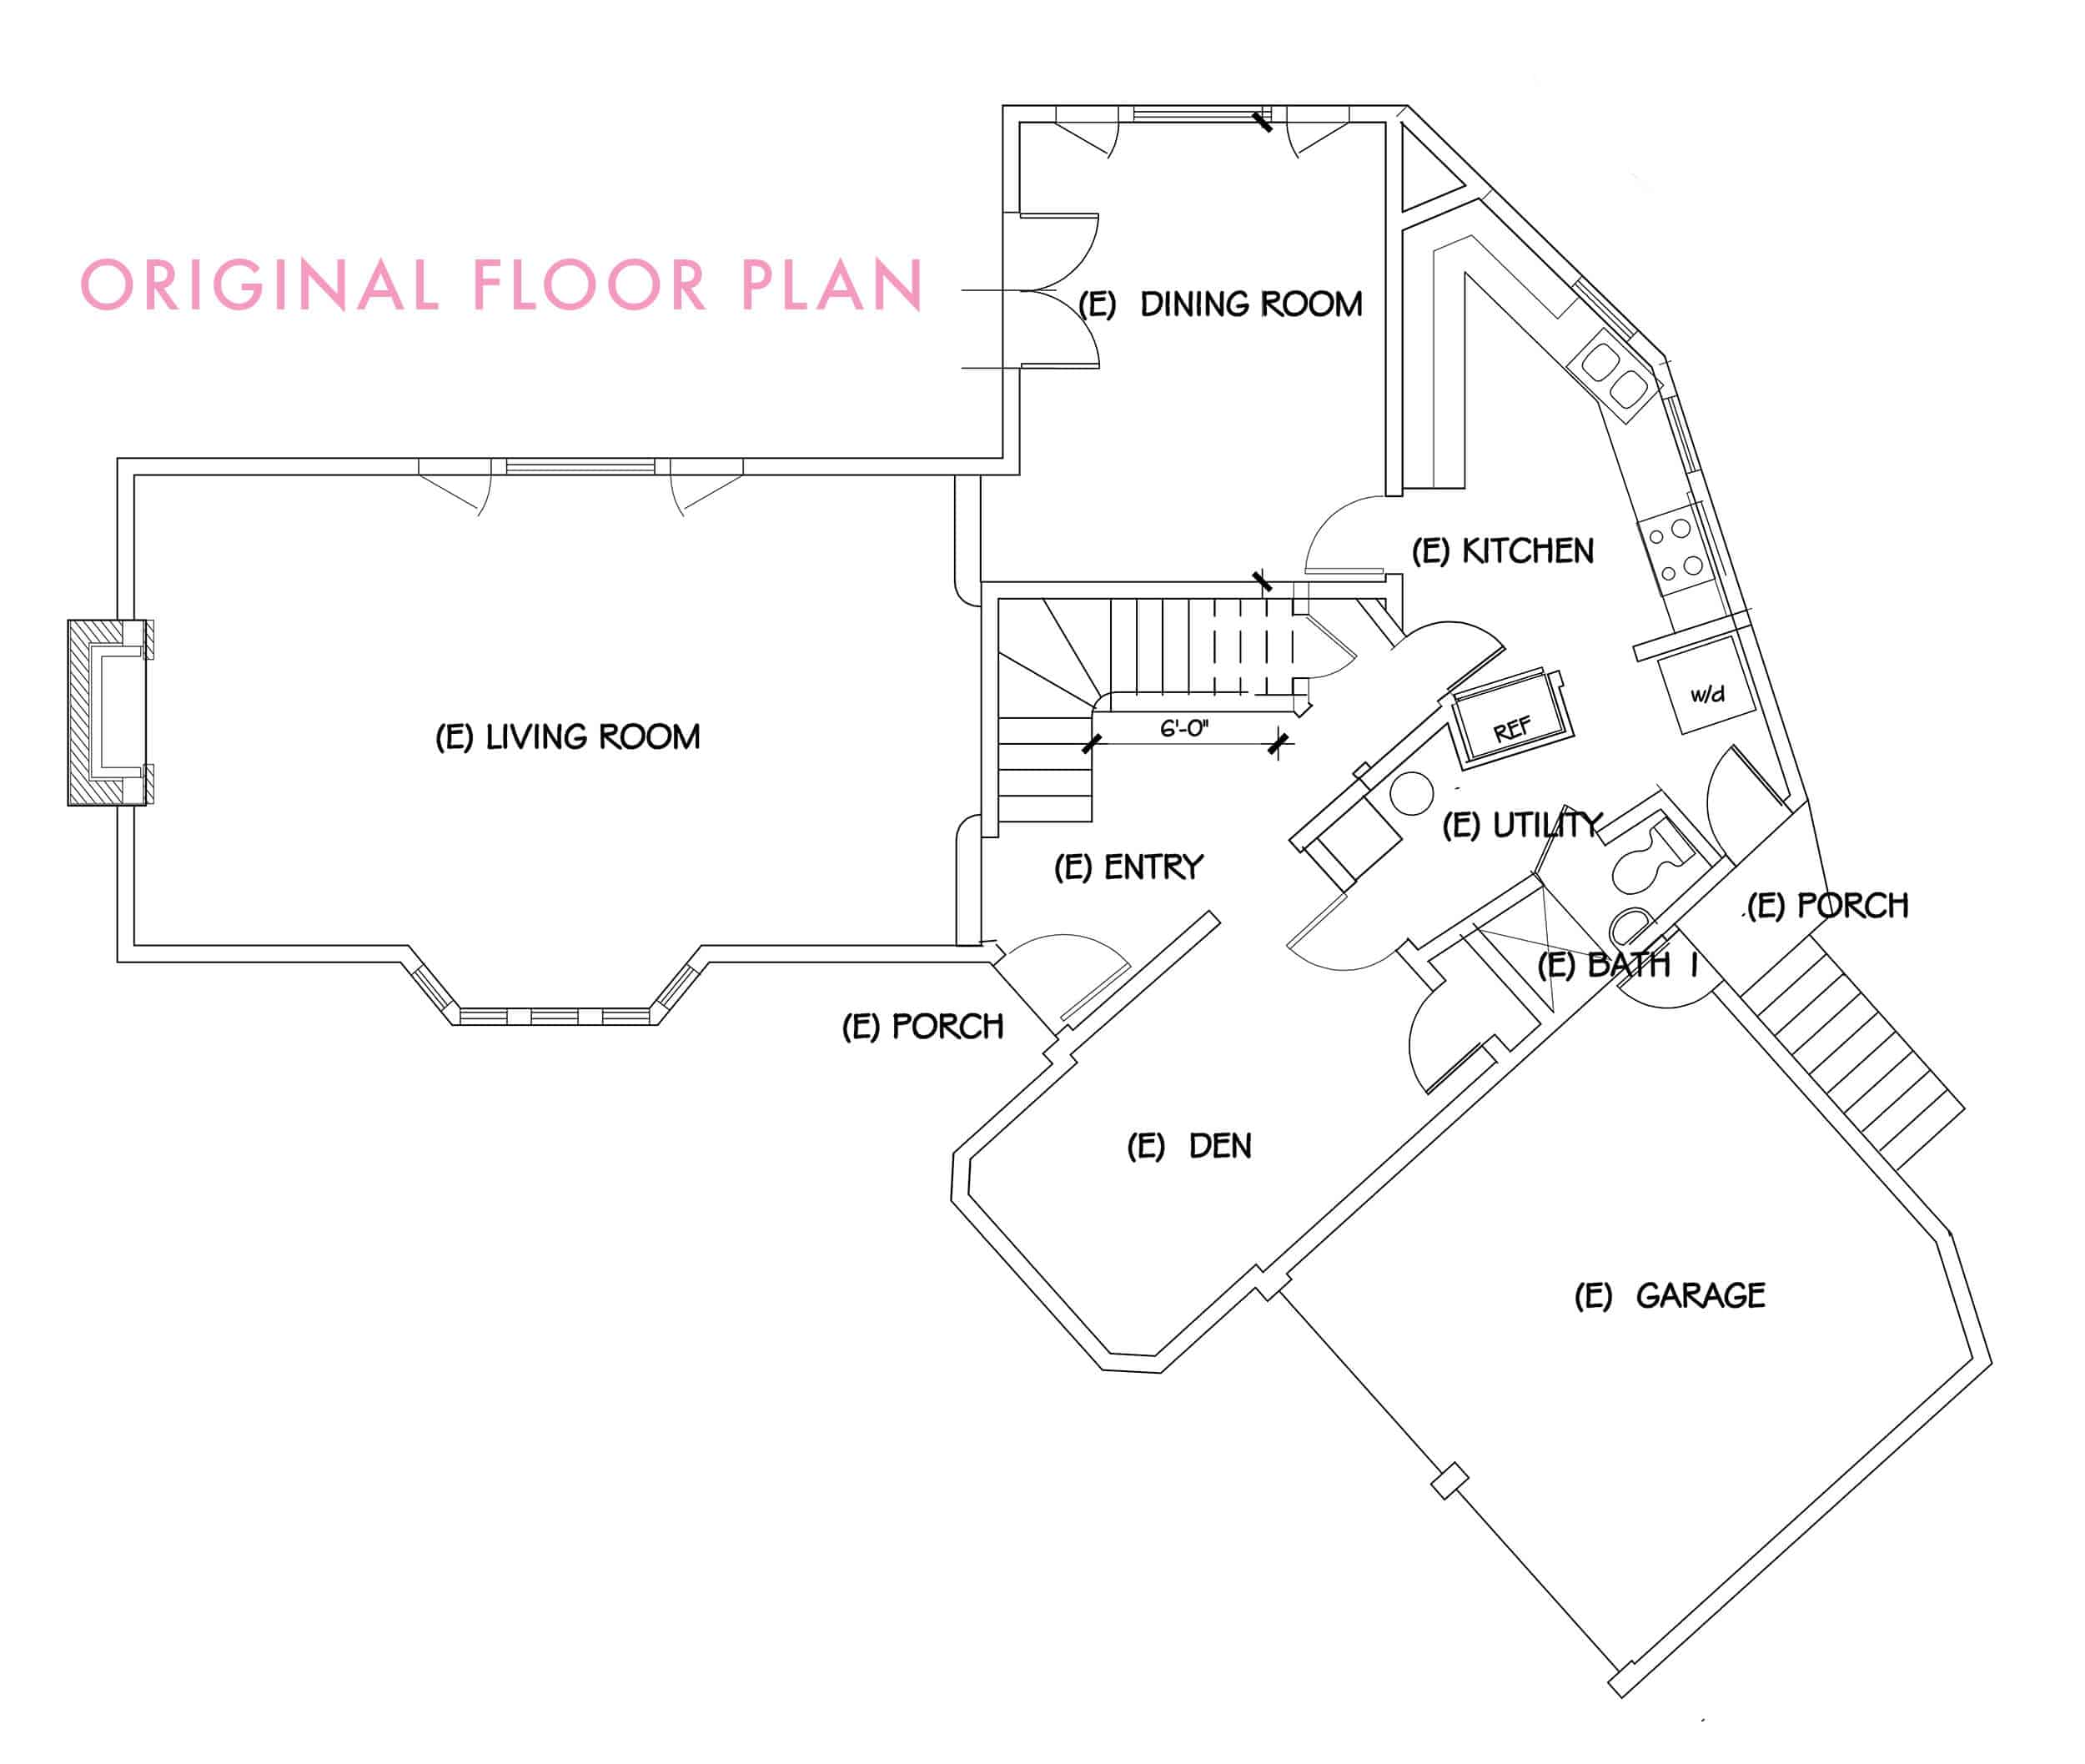 original_floor-plan_revised-floor-plan_before_with-text-overlay